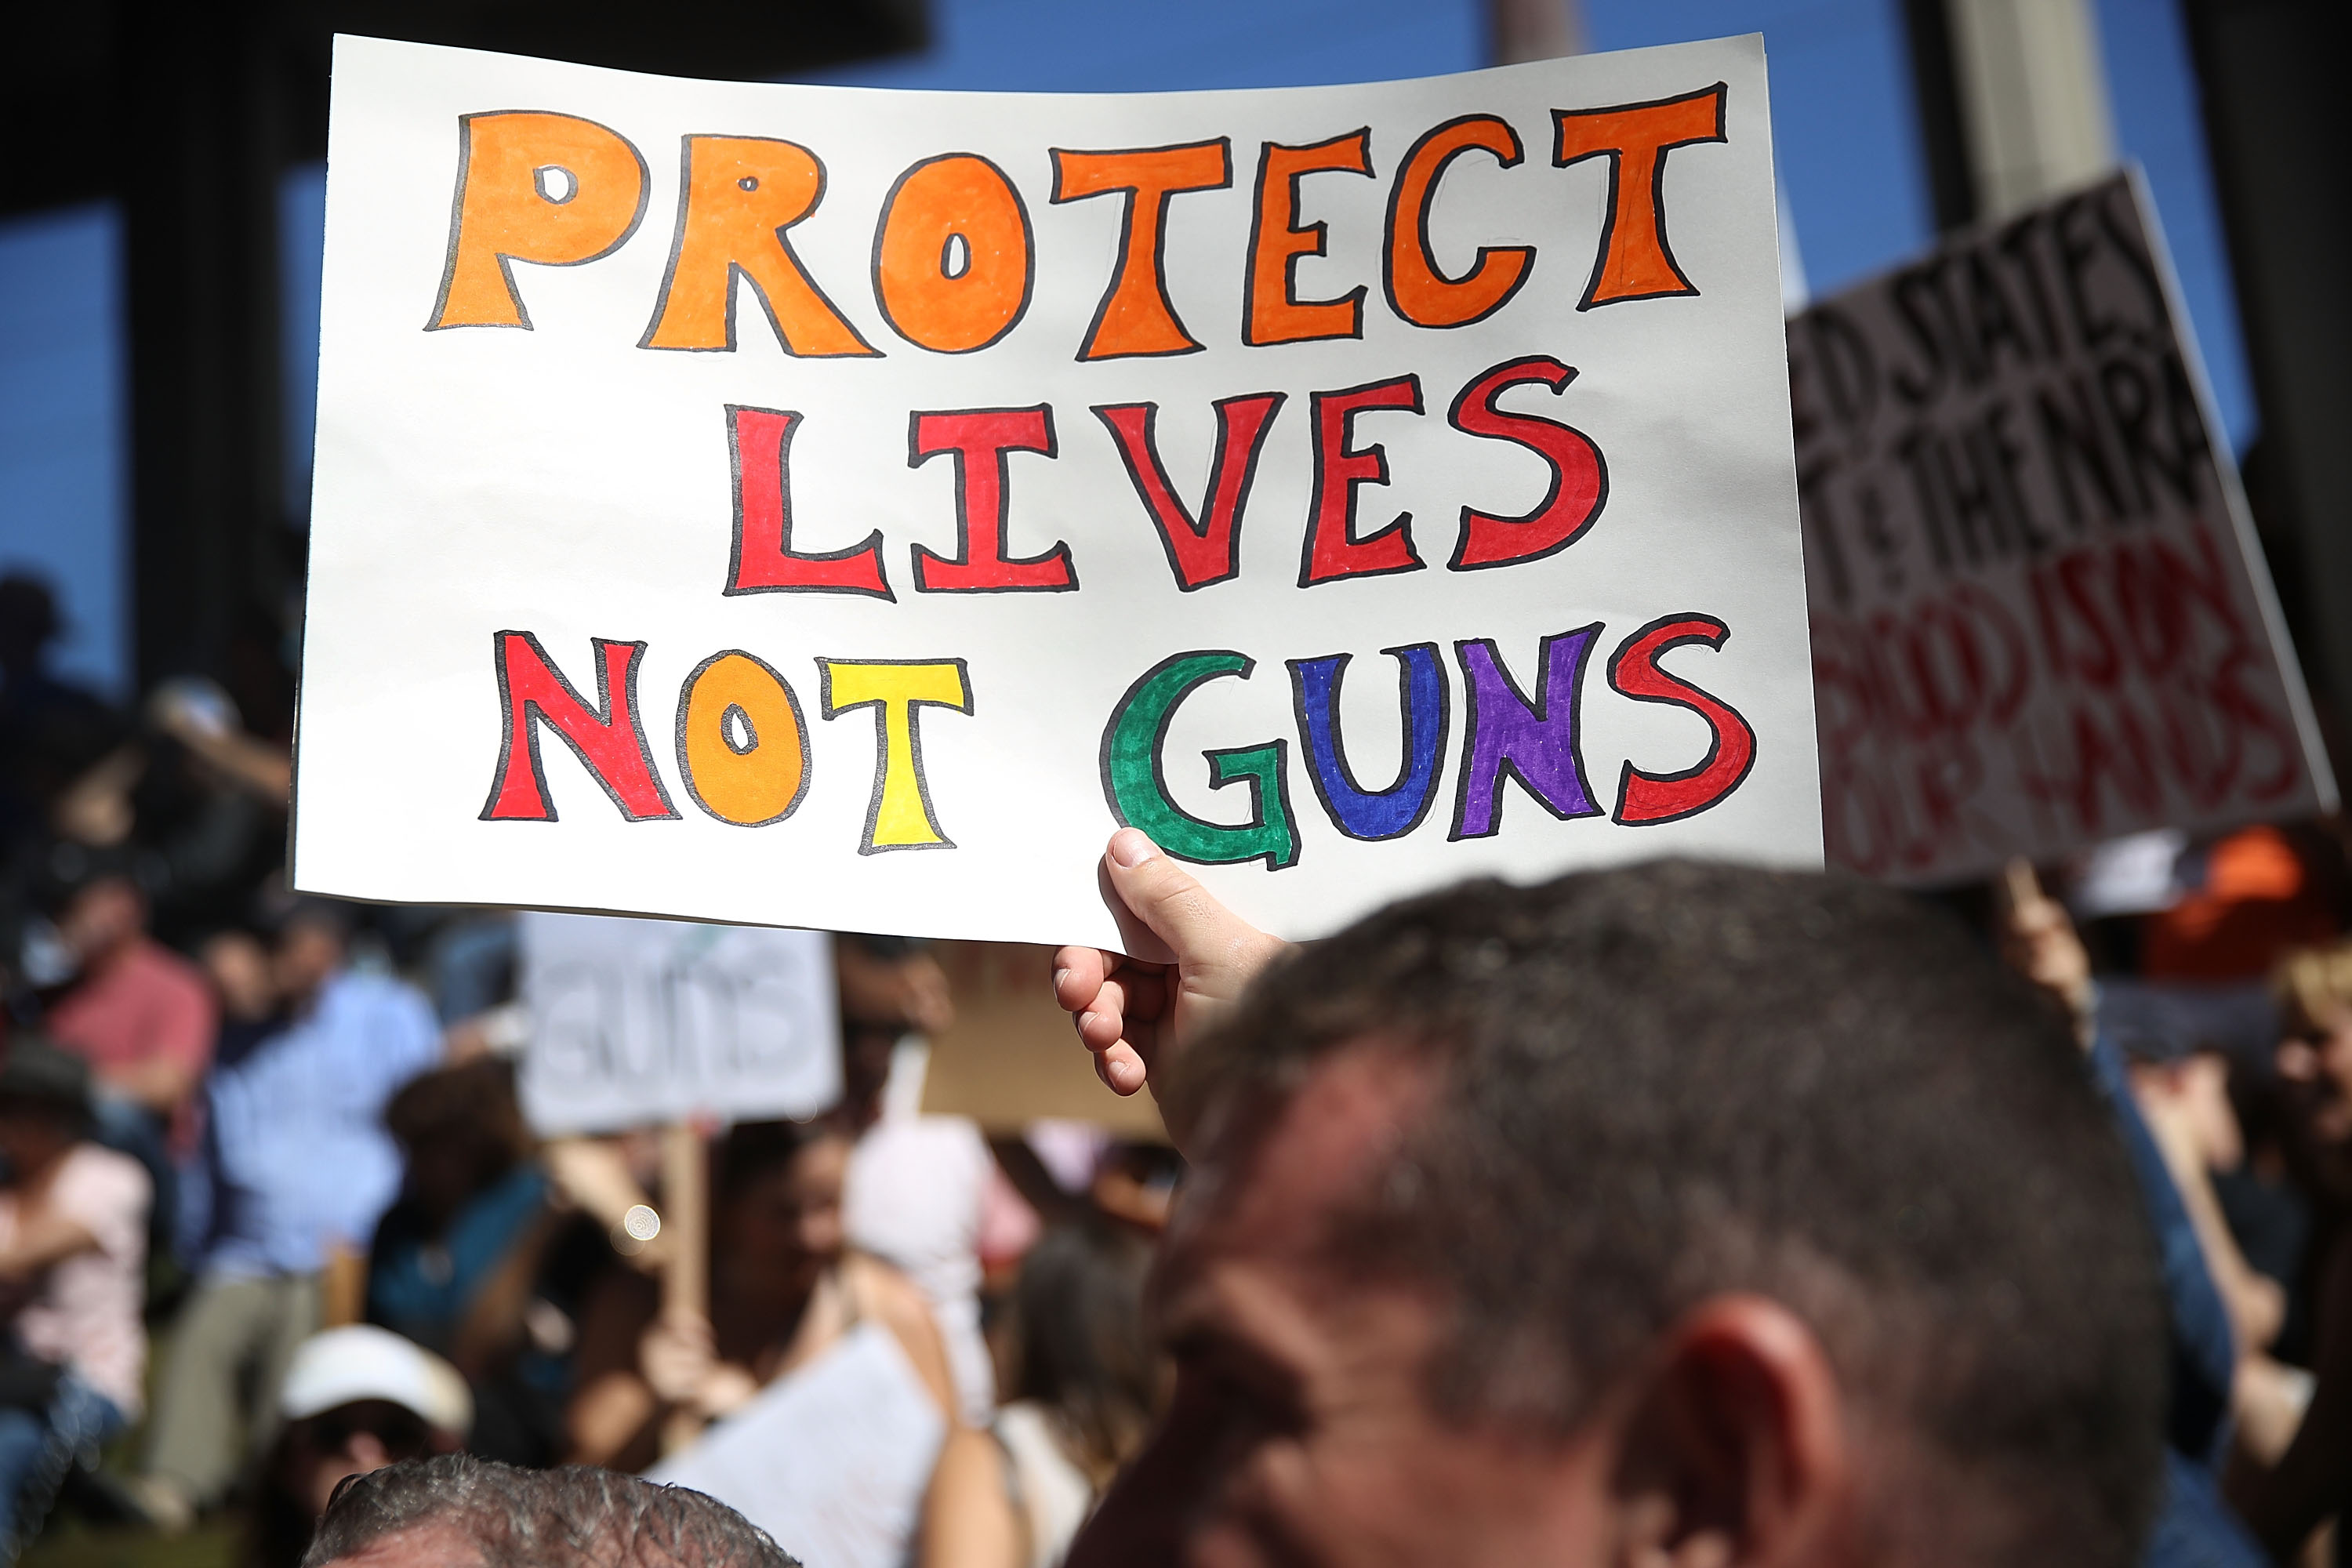 People join together after a school shooting that killed 17 to protest against guns on the steps of the Broward County Federal courthouse on February 17, 2018 in Fort Lauderdale, Florida. Earlier this week former student Nikolas Cruz opened fire with a AR-15 rifle at the Marjory Stoneman Douglas High School killing 17 people.  (Photo by Joe Raedle/Getty Images)